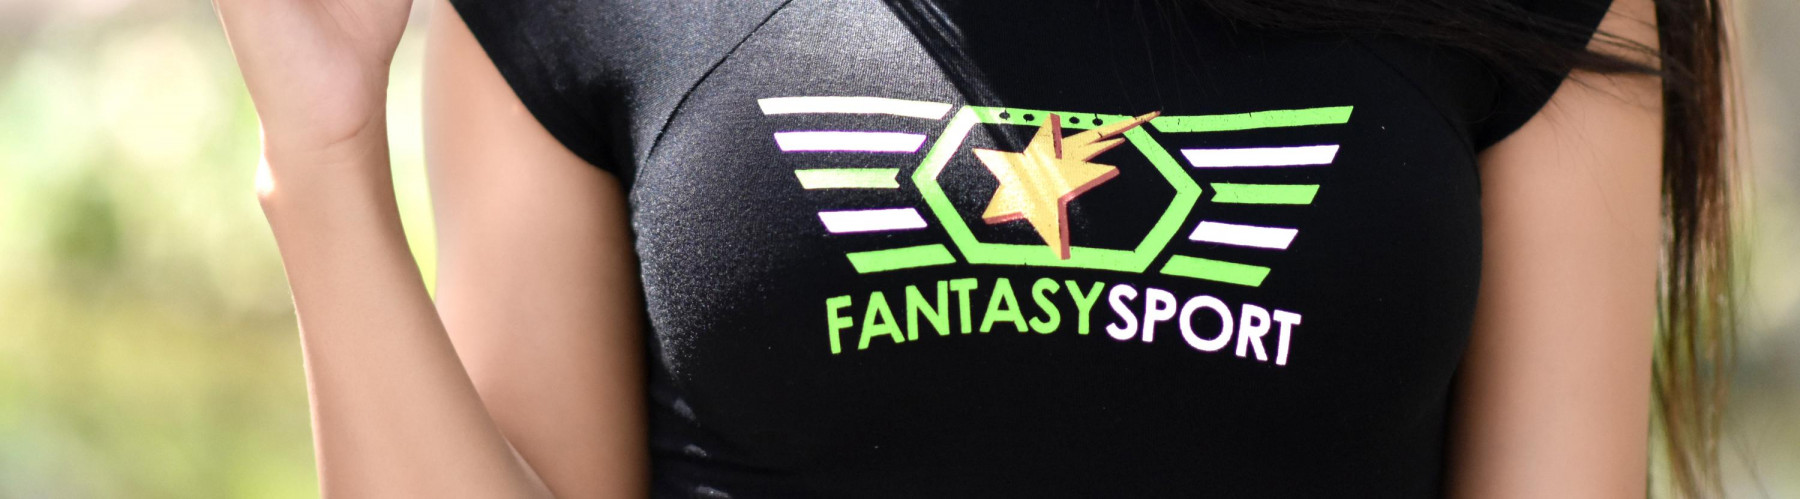 Keys to winning a Fantasy Football League